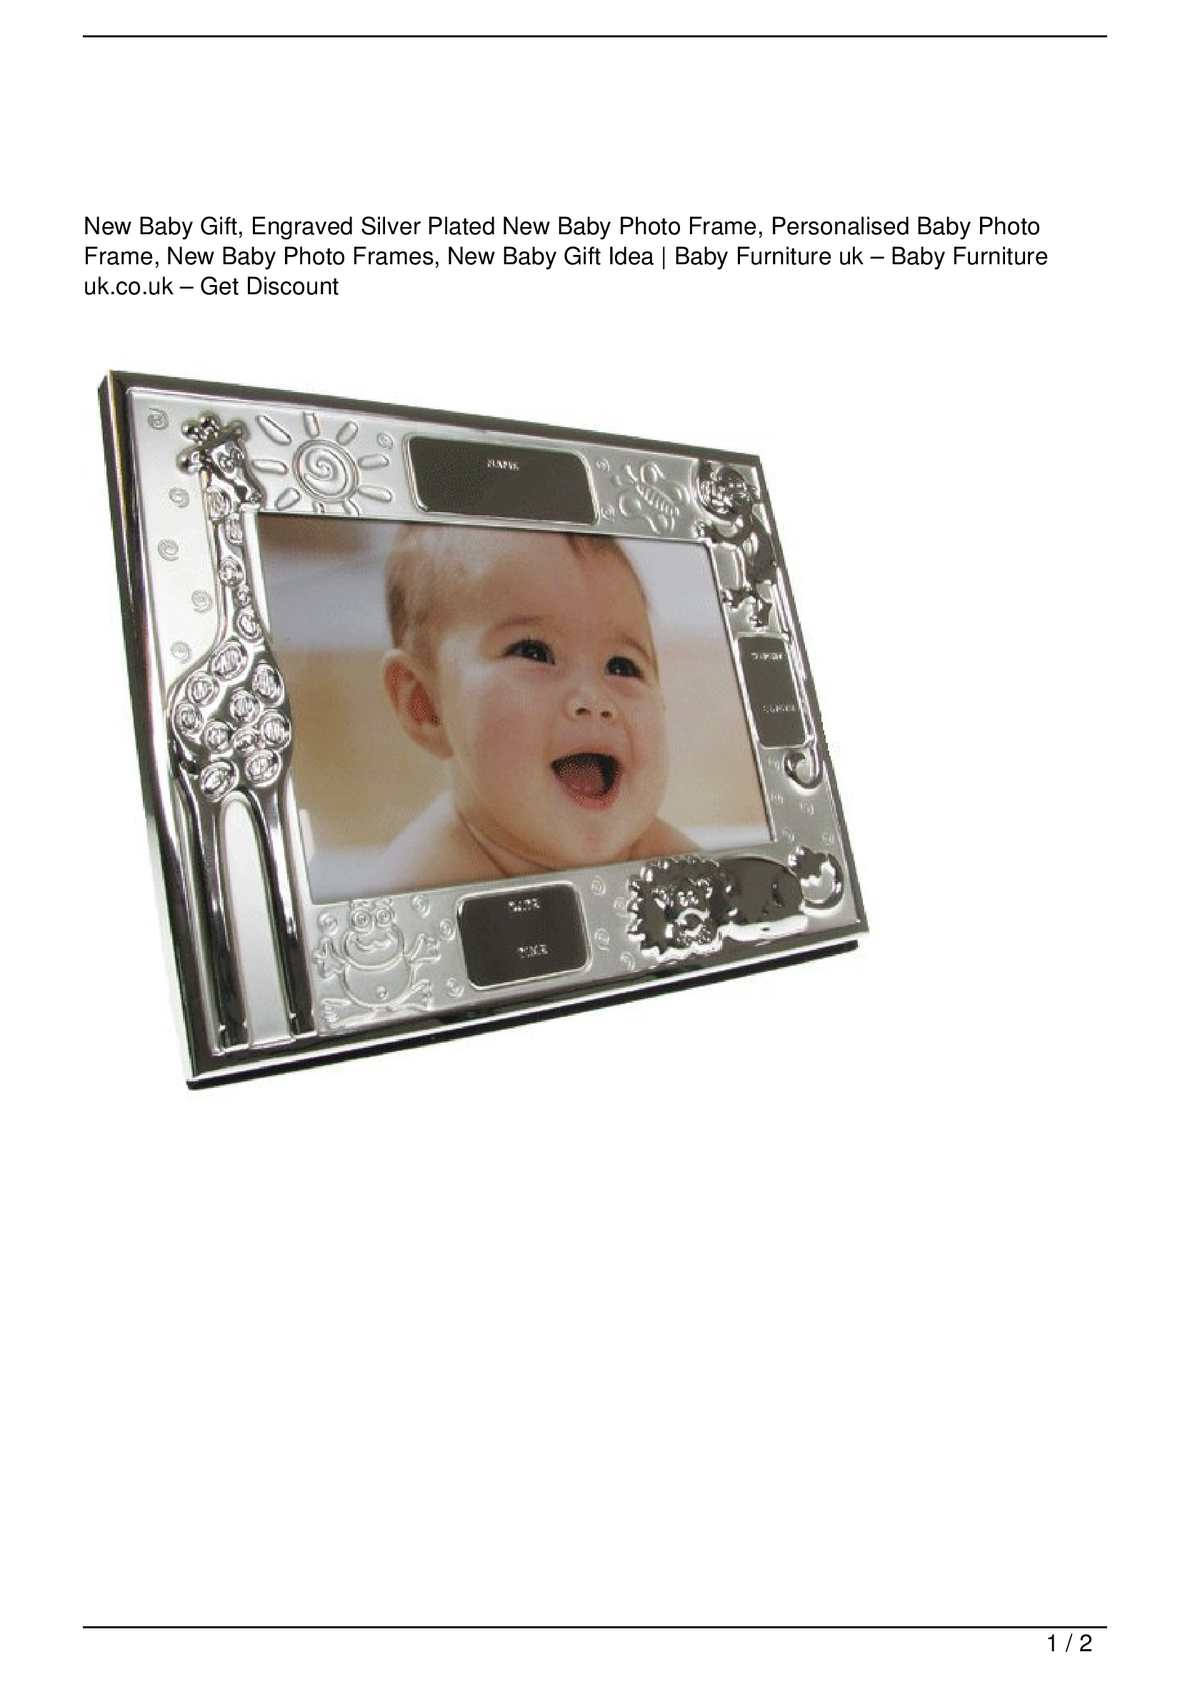 Calaméo - New Baby Gift, Engraved Silver Plated New Baby Photo Frame ...